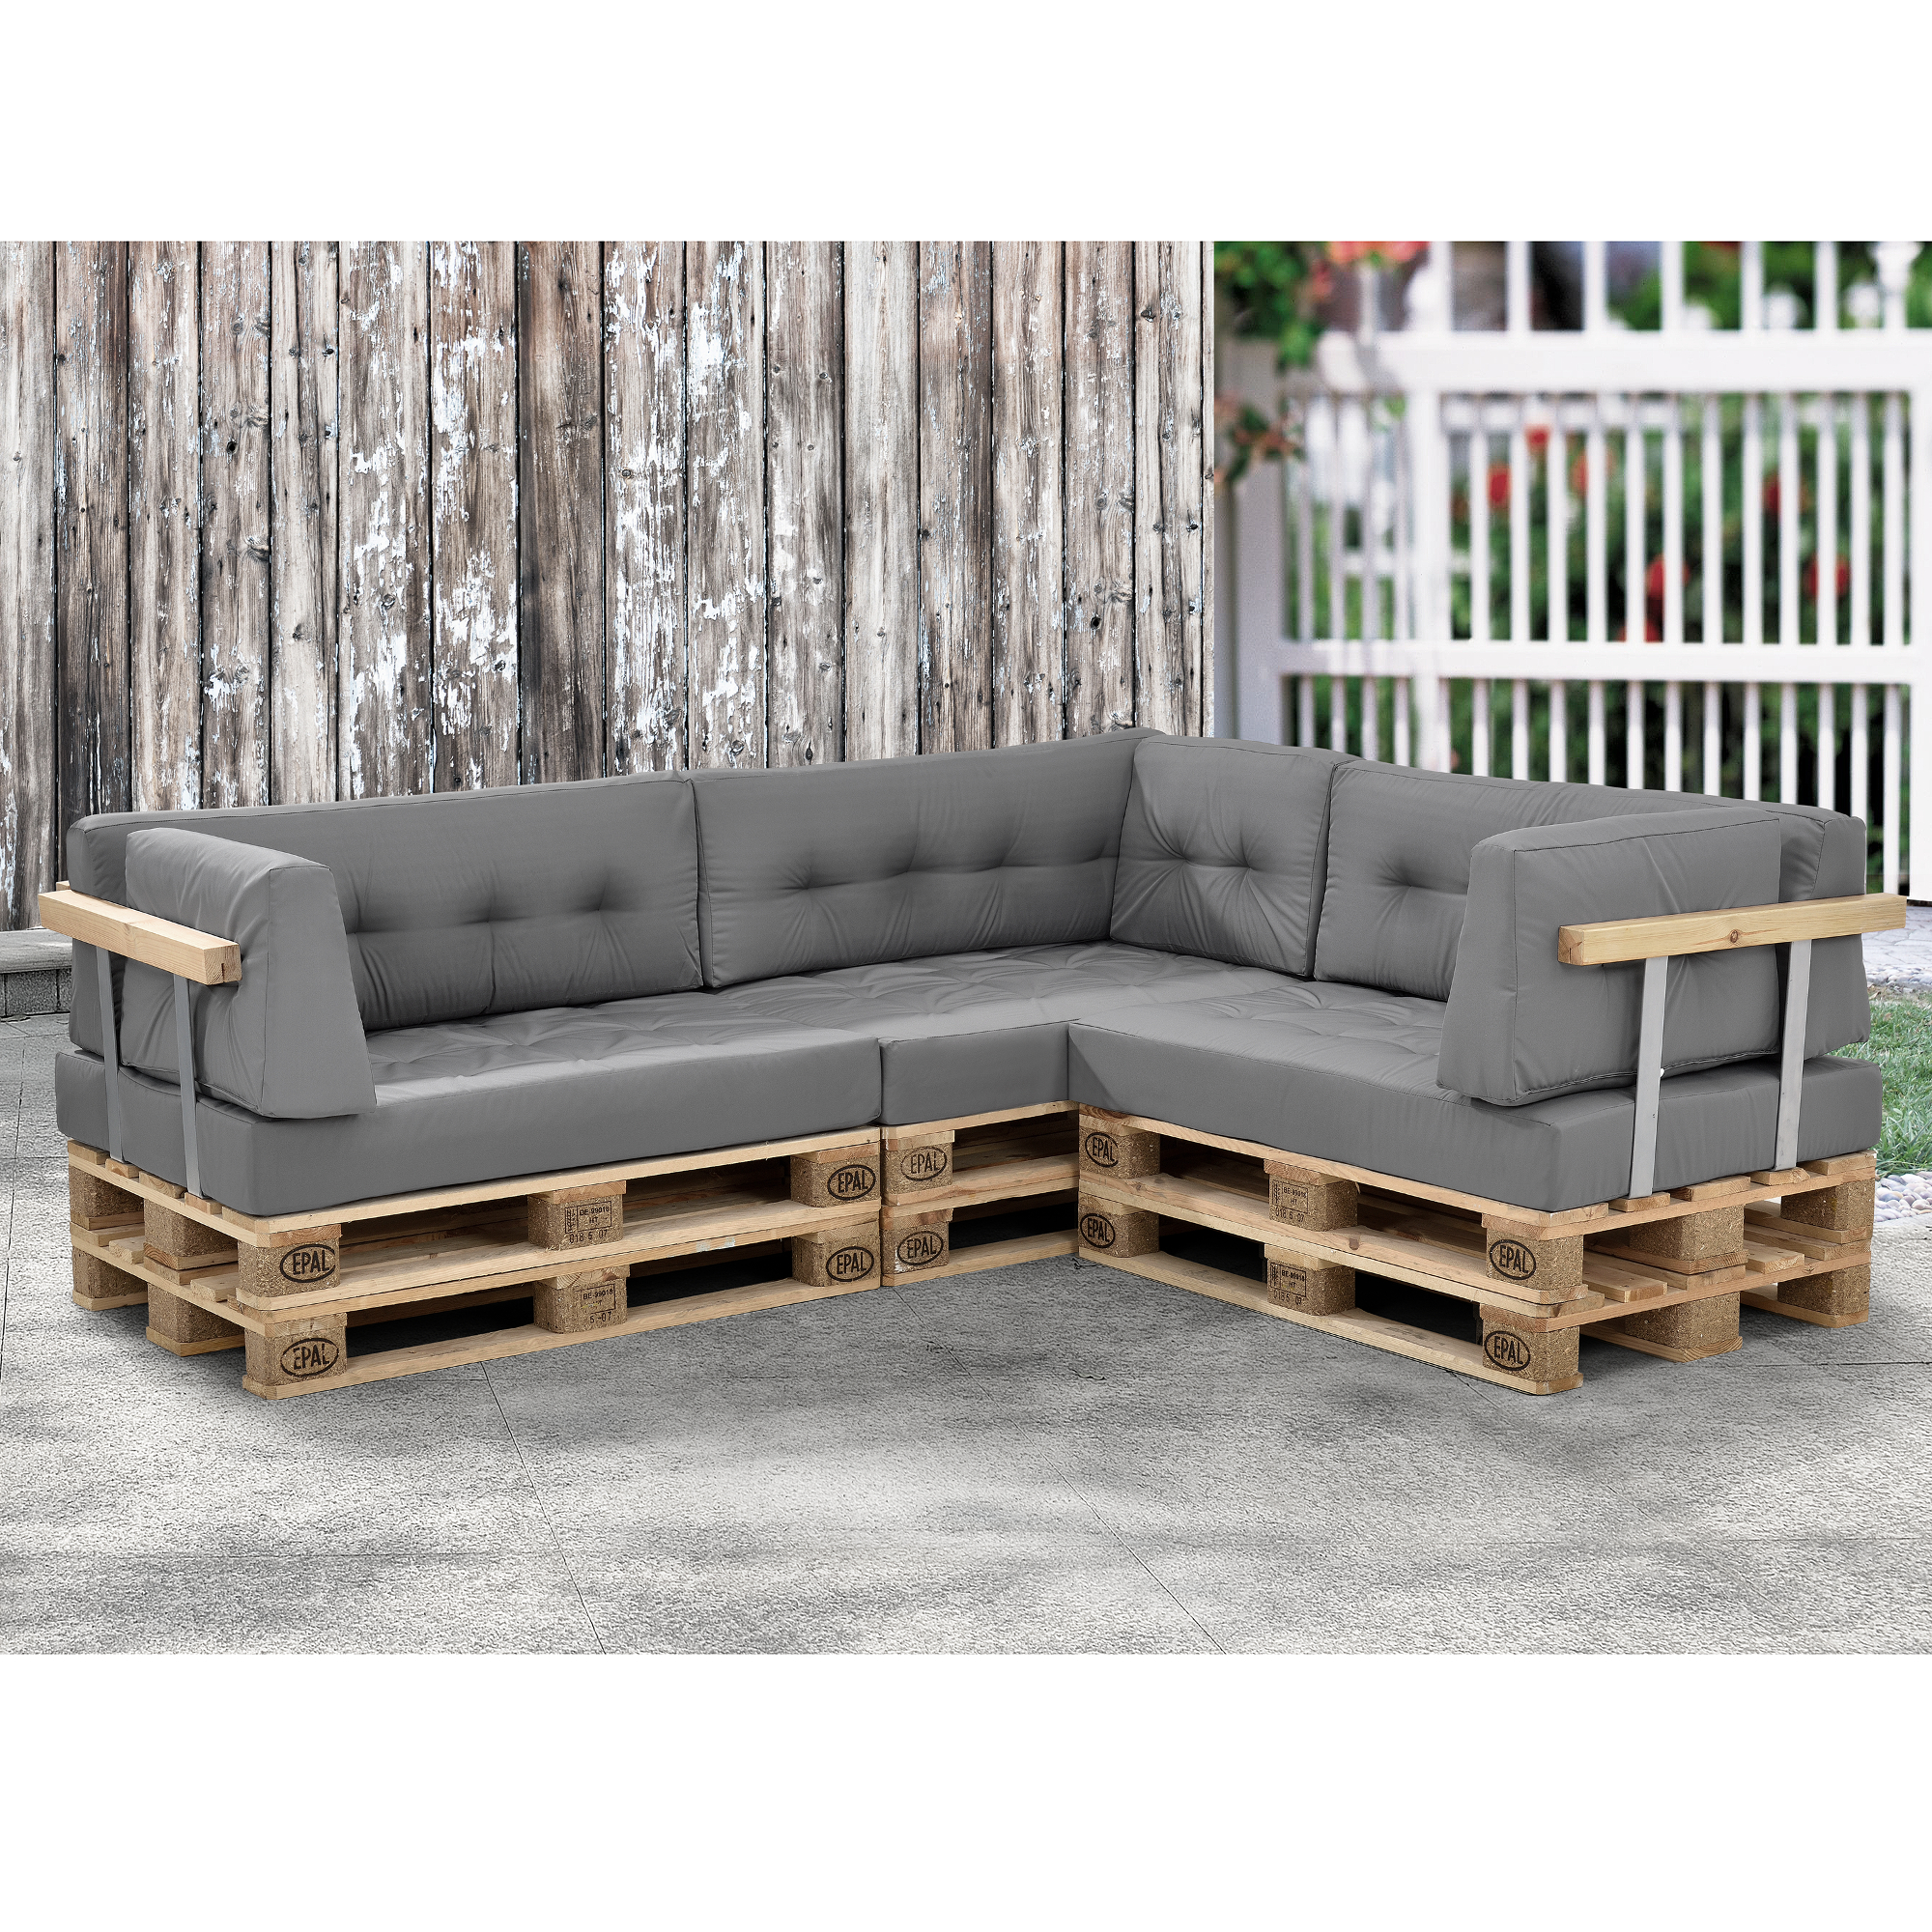 1 x seat pad pallet cushions in outdoor pallets - Sofas palets exterior ...